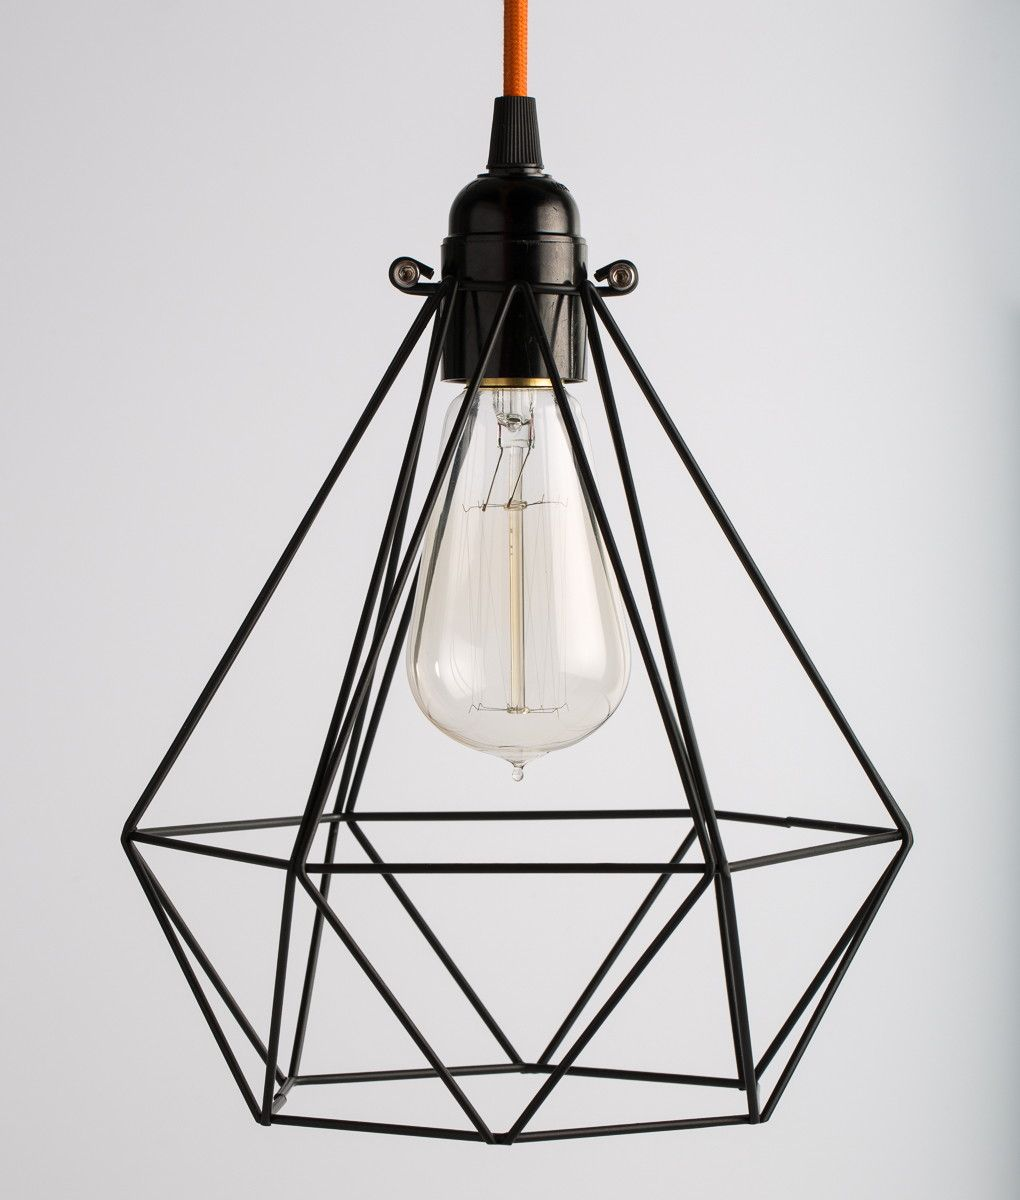 This Black Diamond Cage Light Shade Is Quite Architectural In Feel